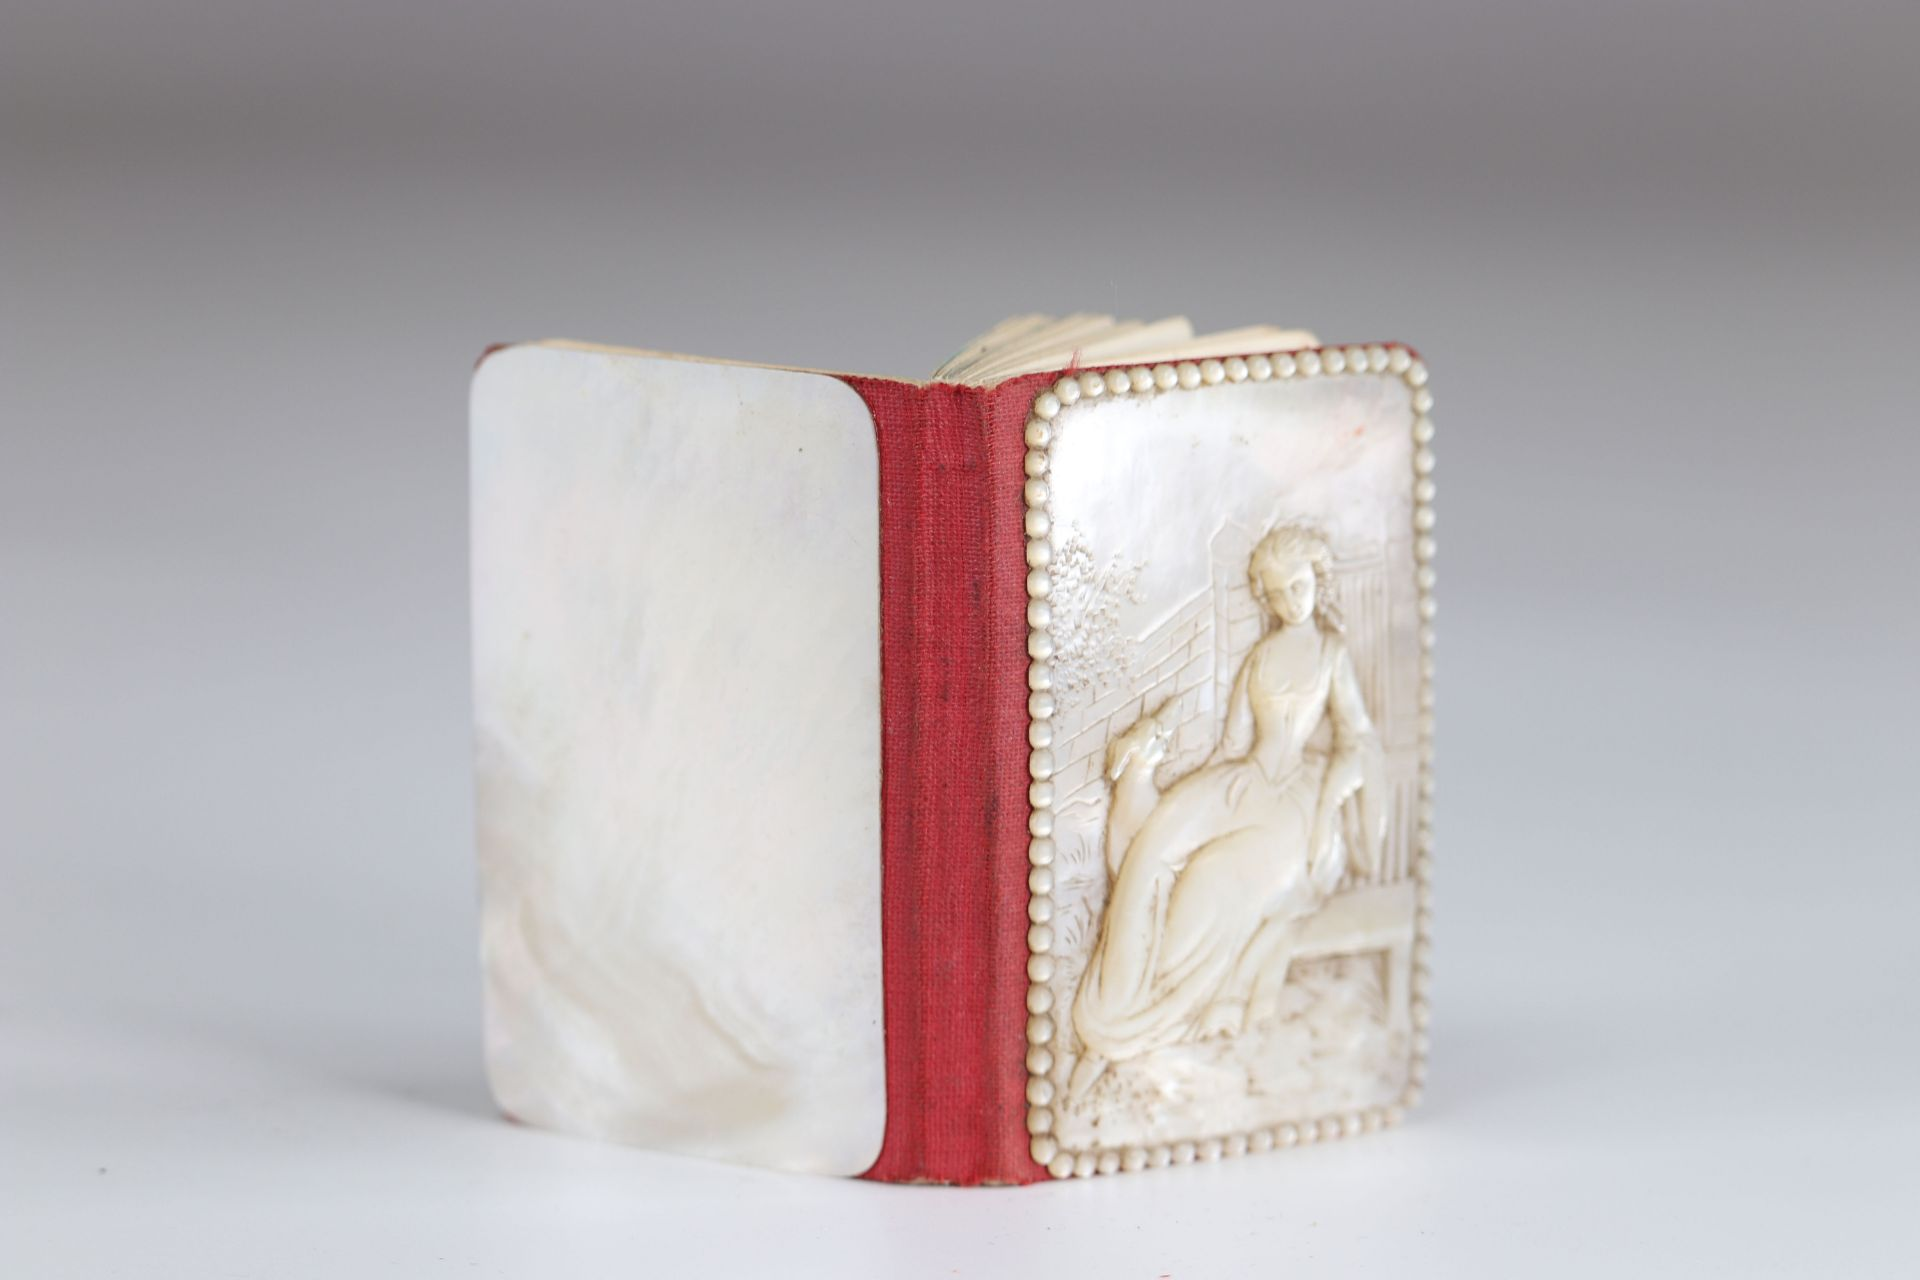 Carved mother-of-pearl ball book of a young woman with a greyhound - Image 2 of 3